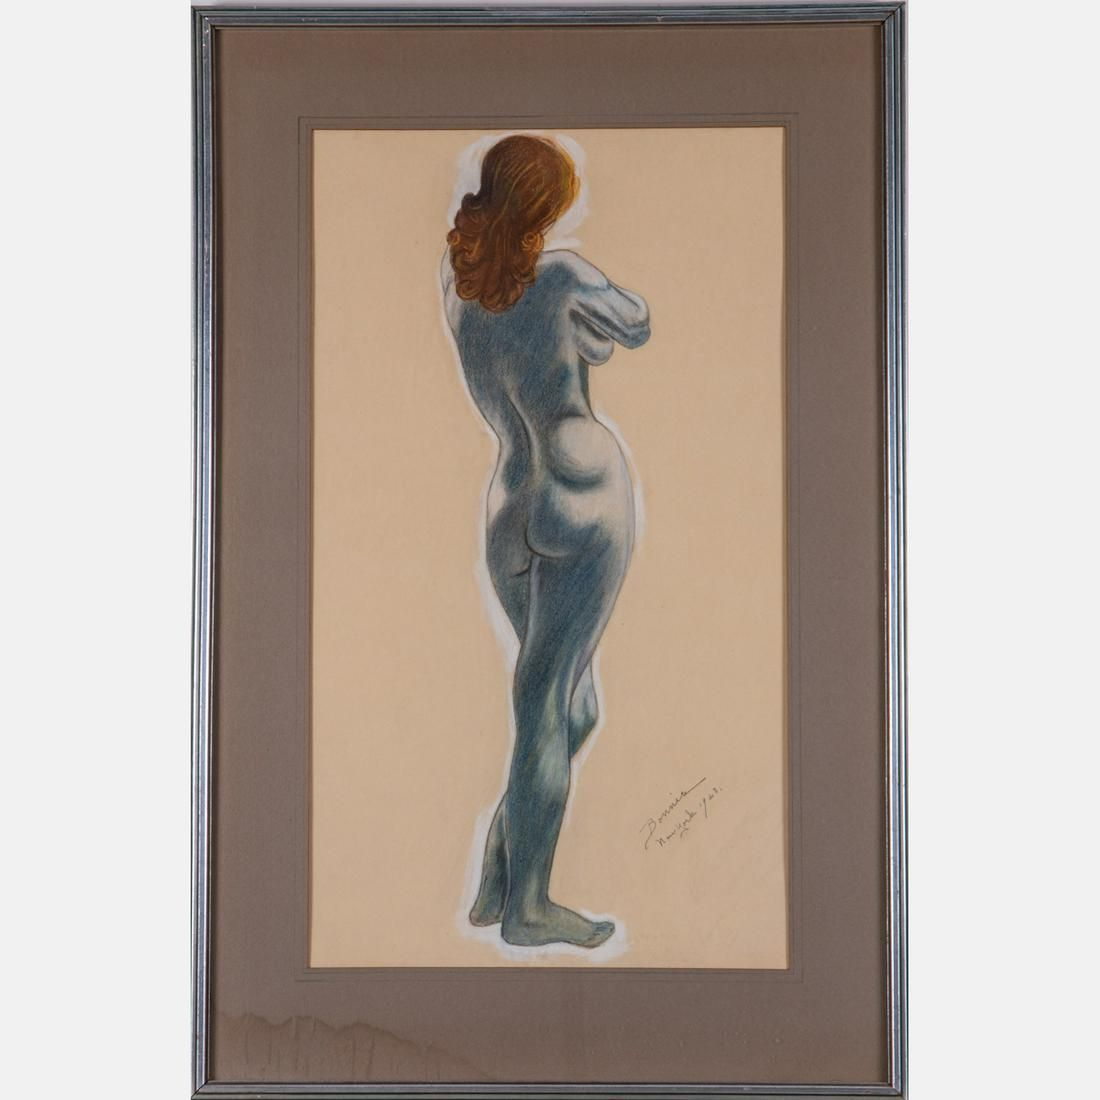 Bonnis ( 20th Century) Nude, Pastel on paper,